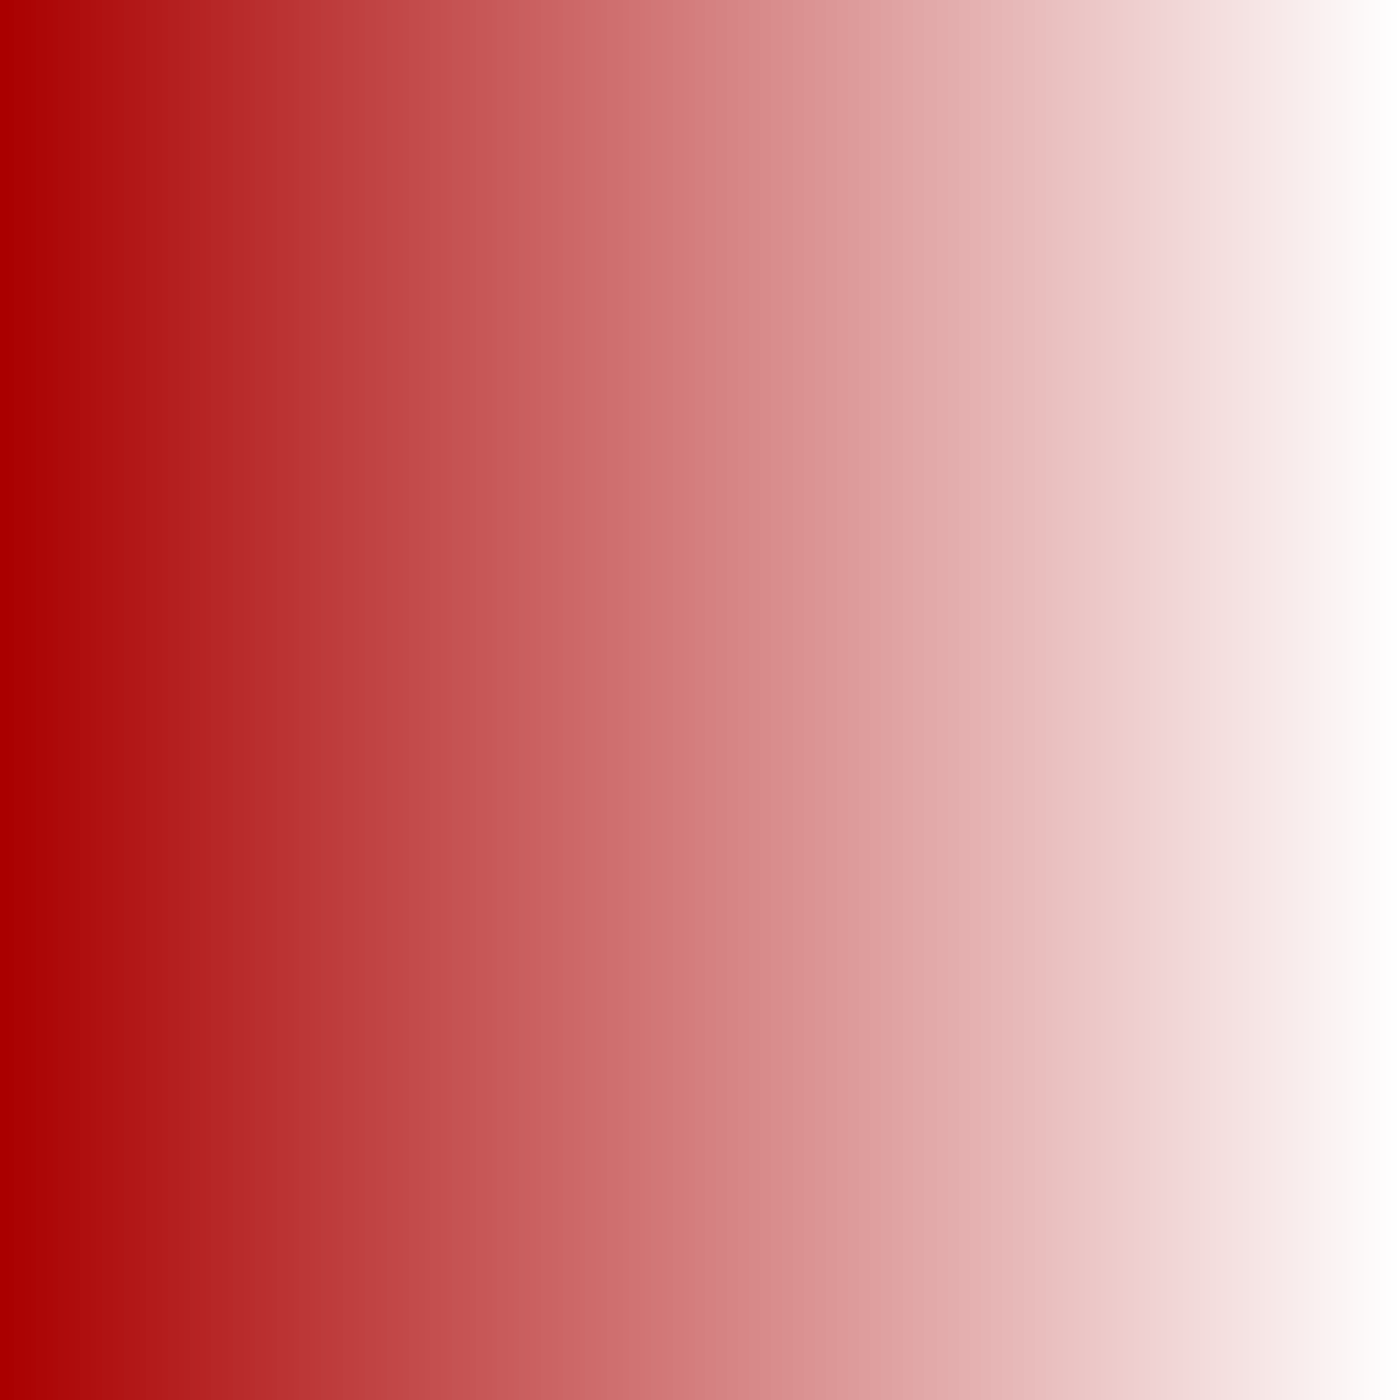 Download Blog Background Red Red And White Gradient Background Png Image With No Background Pngkey Com